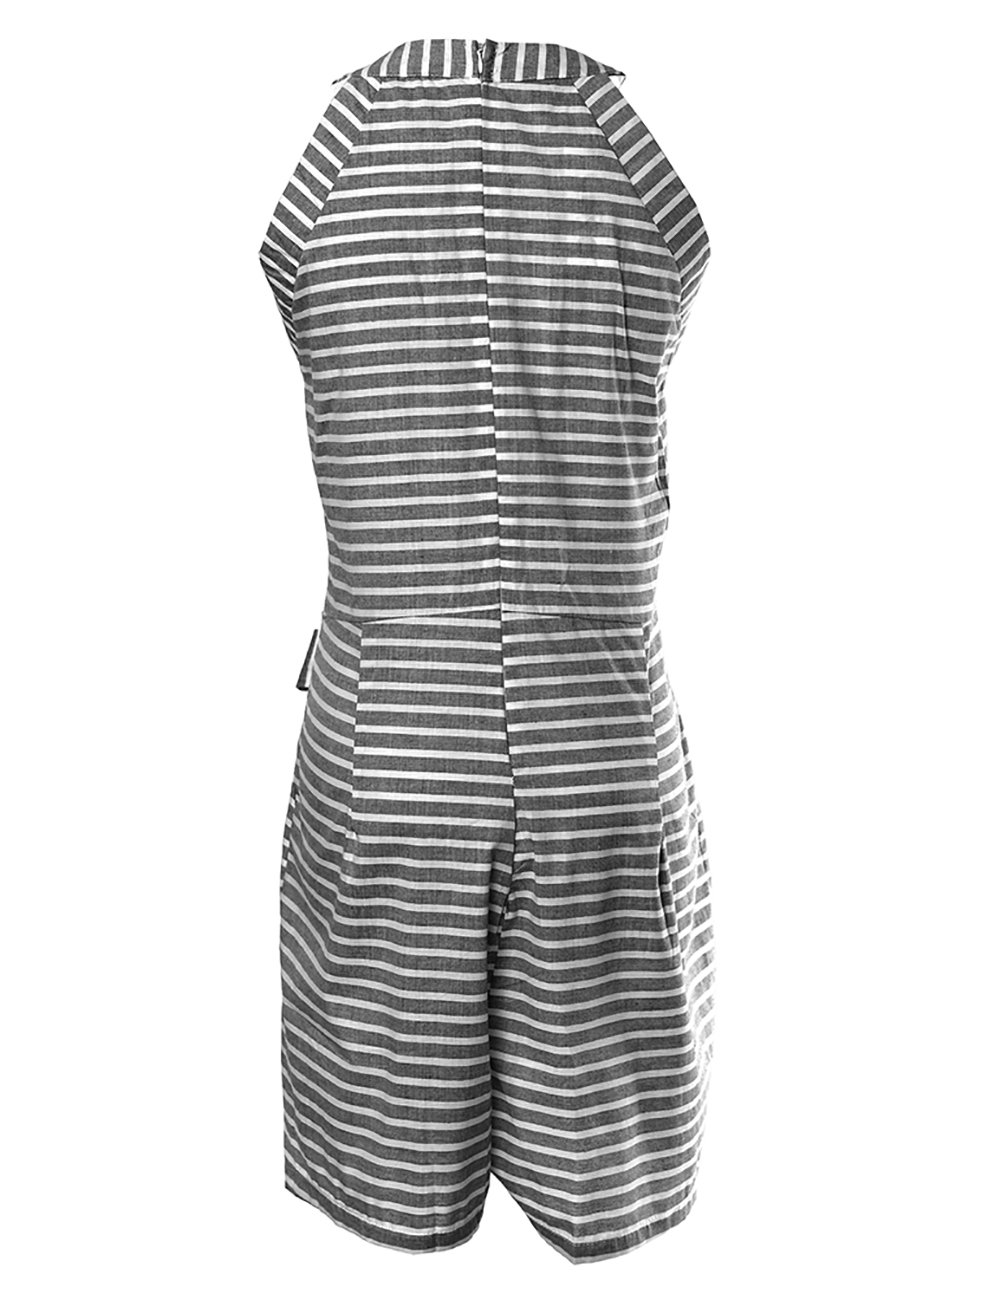 DUBACH Women Casual Striped Sleeveless Short Romper Jumpsuit L Gray by DUBACH (Image #5)